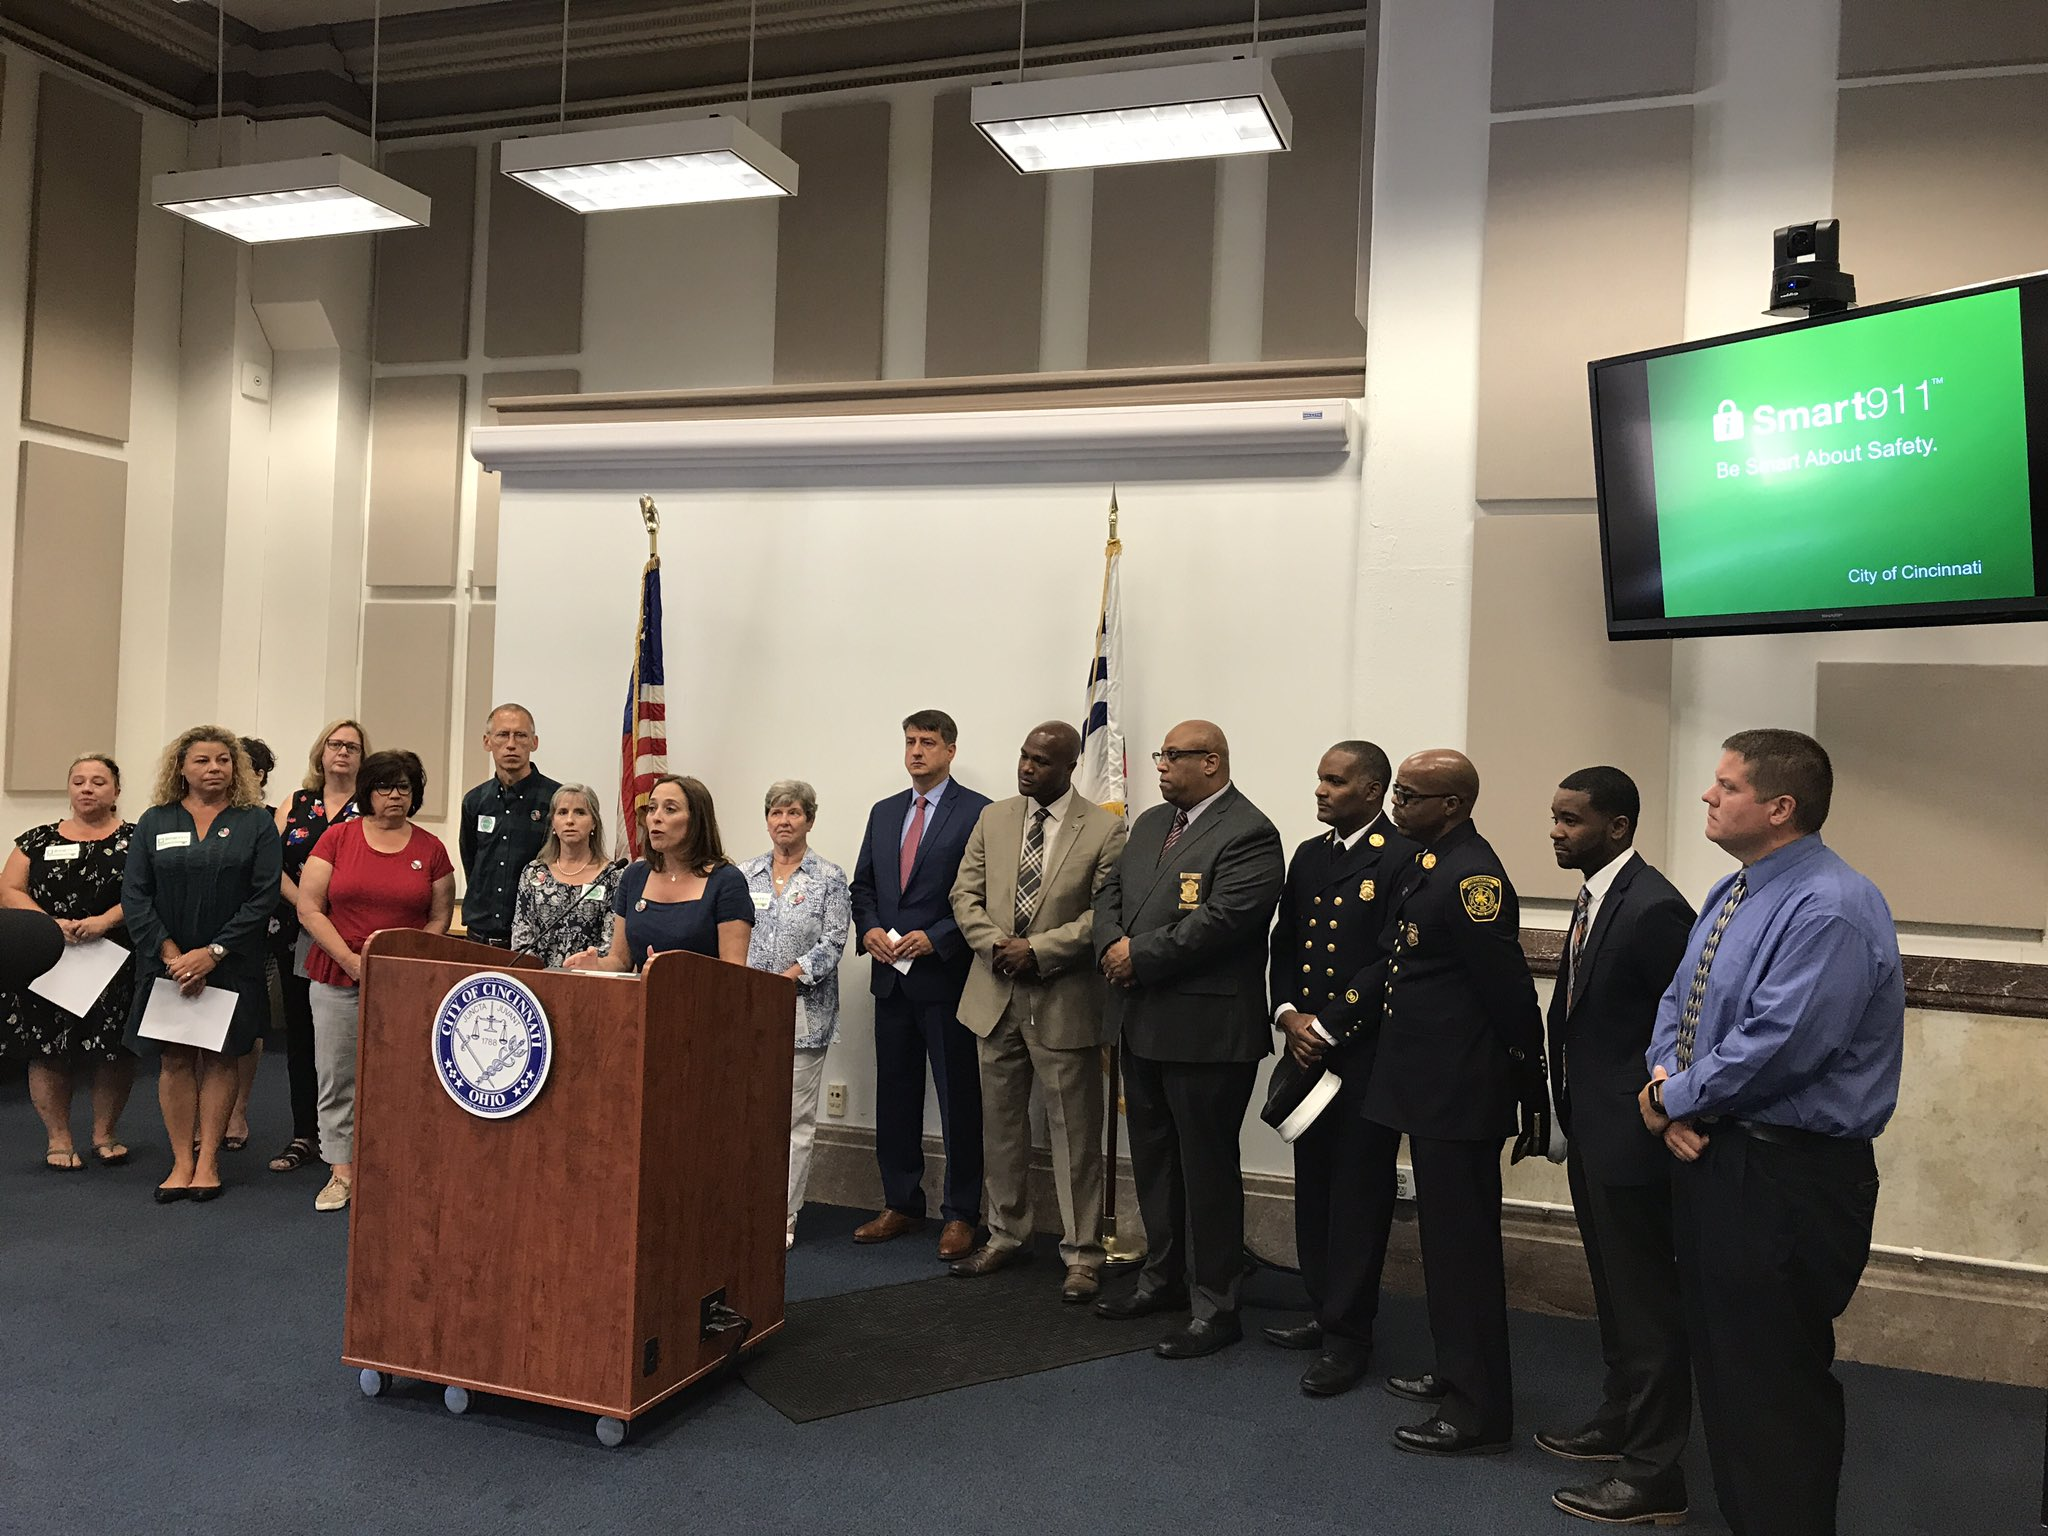 Councilwoman Amy Murray invites residents of Cincinnati to sign up for a Smart911 safety profile. She is joined by members of the City Administration, public safety officials and the Plush family.